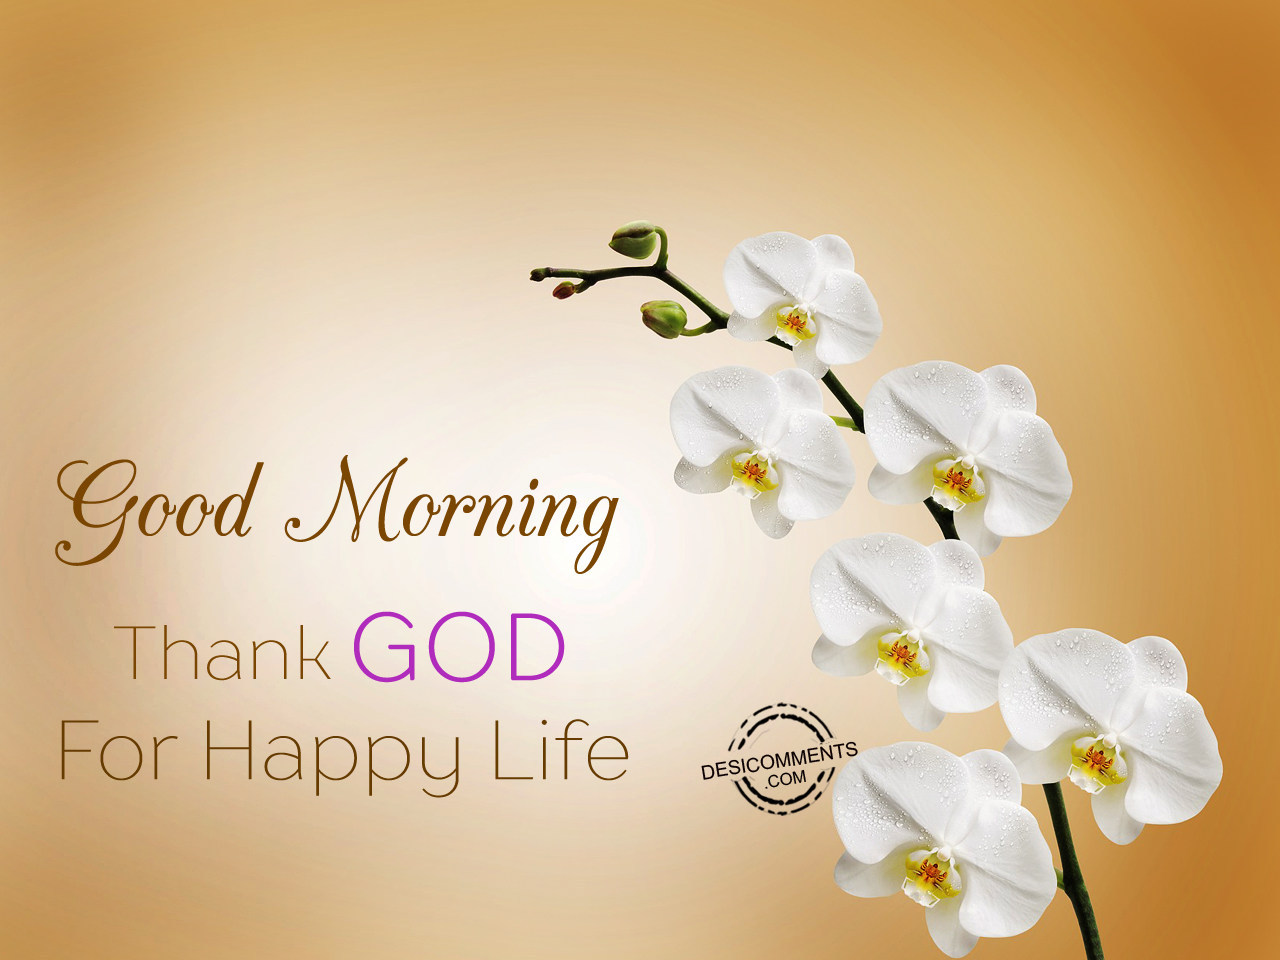 Good Morning Happy Life Quotes: Good Morning Thank God For Happy Life